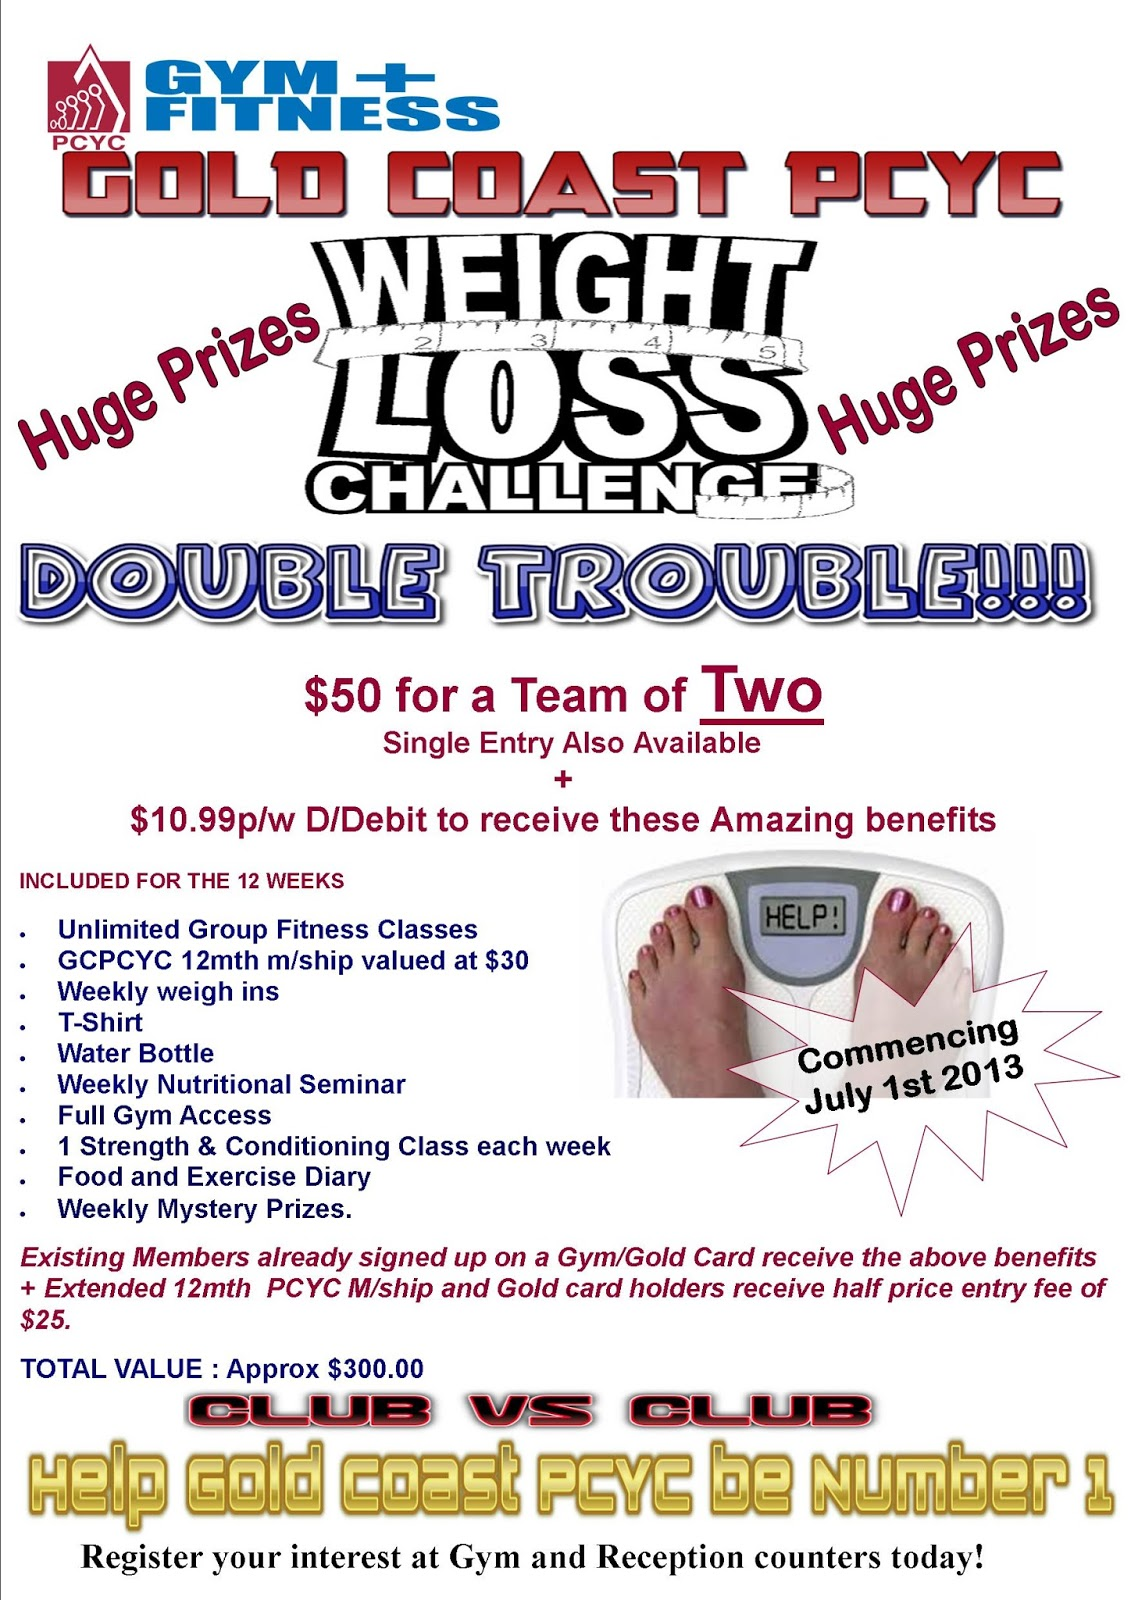 Weight loss contest flyer ideas pictures to pin on for Weight loss challenge flyer template